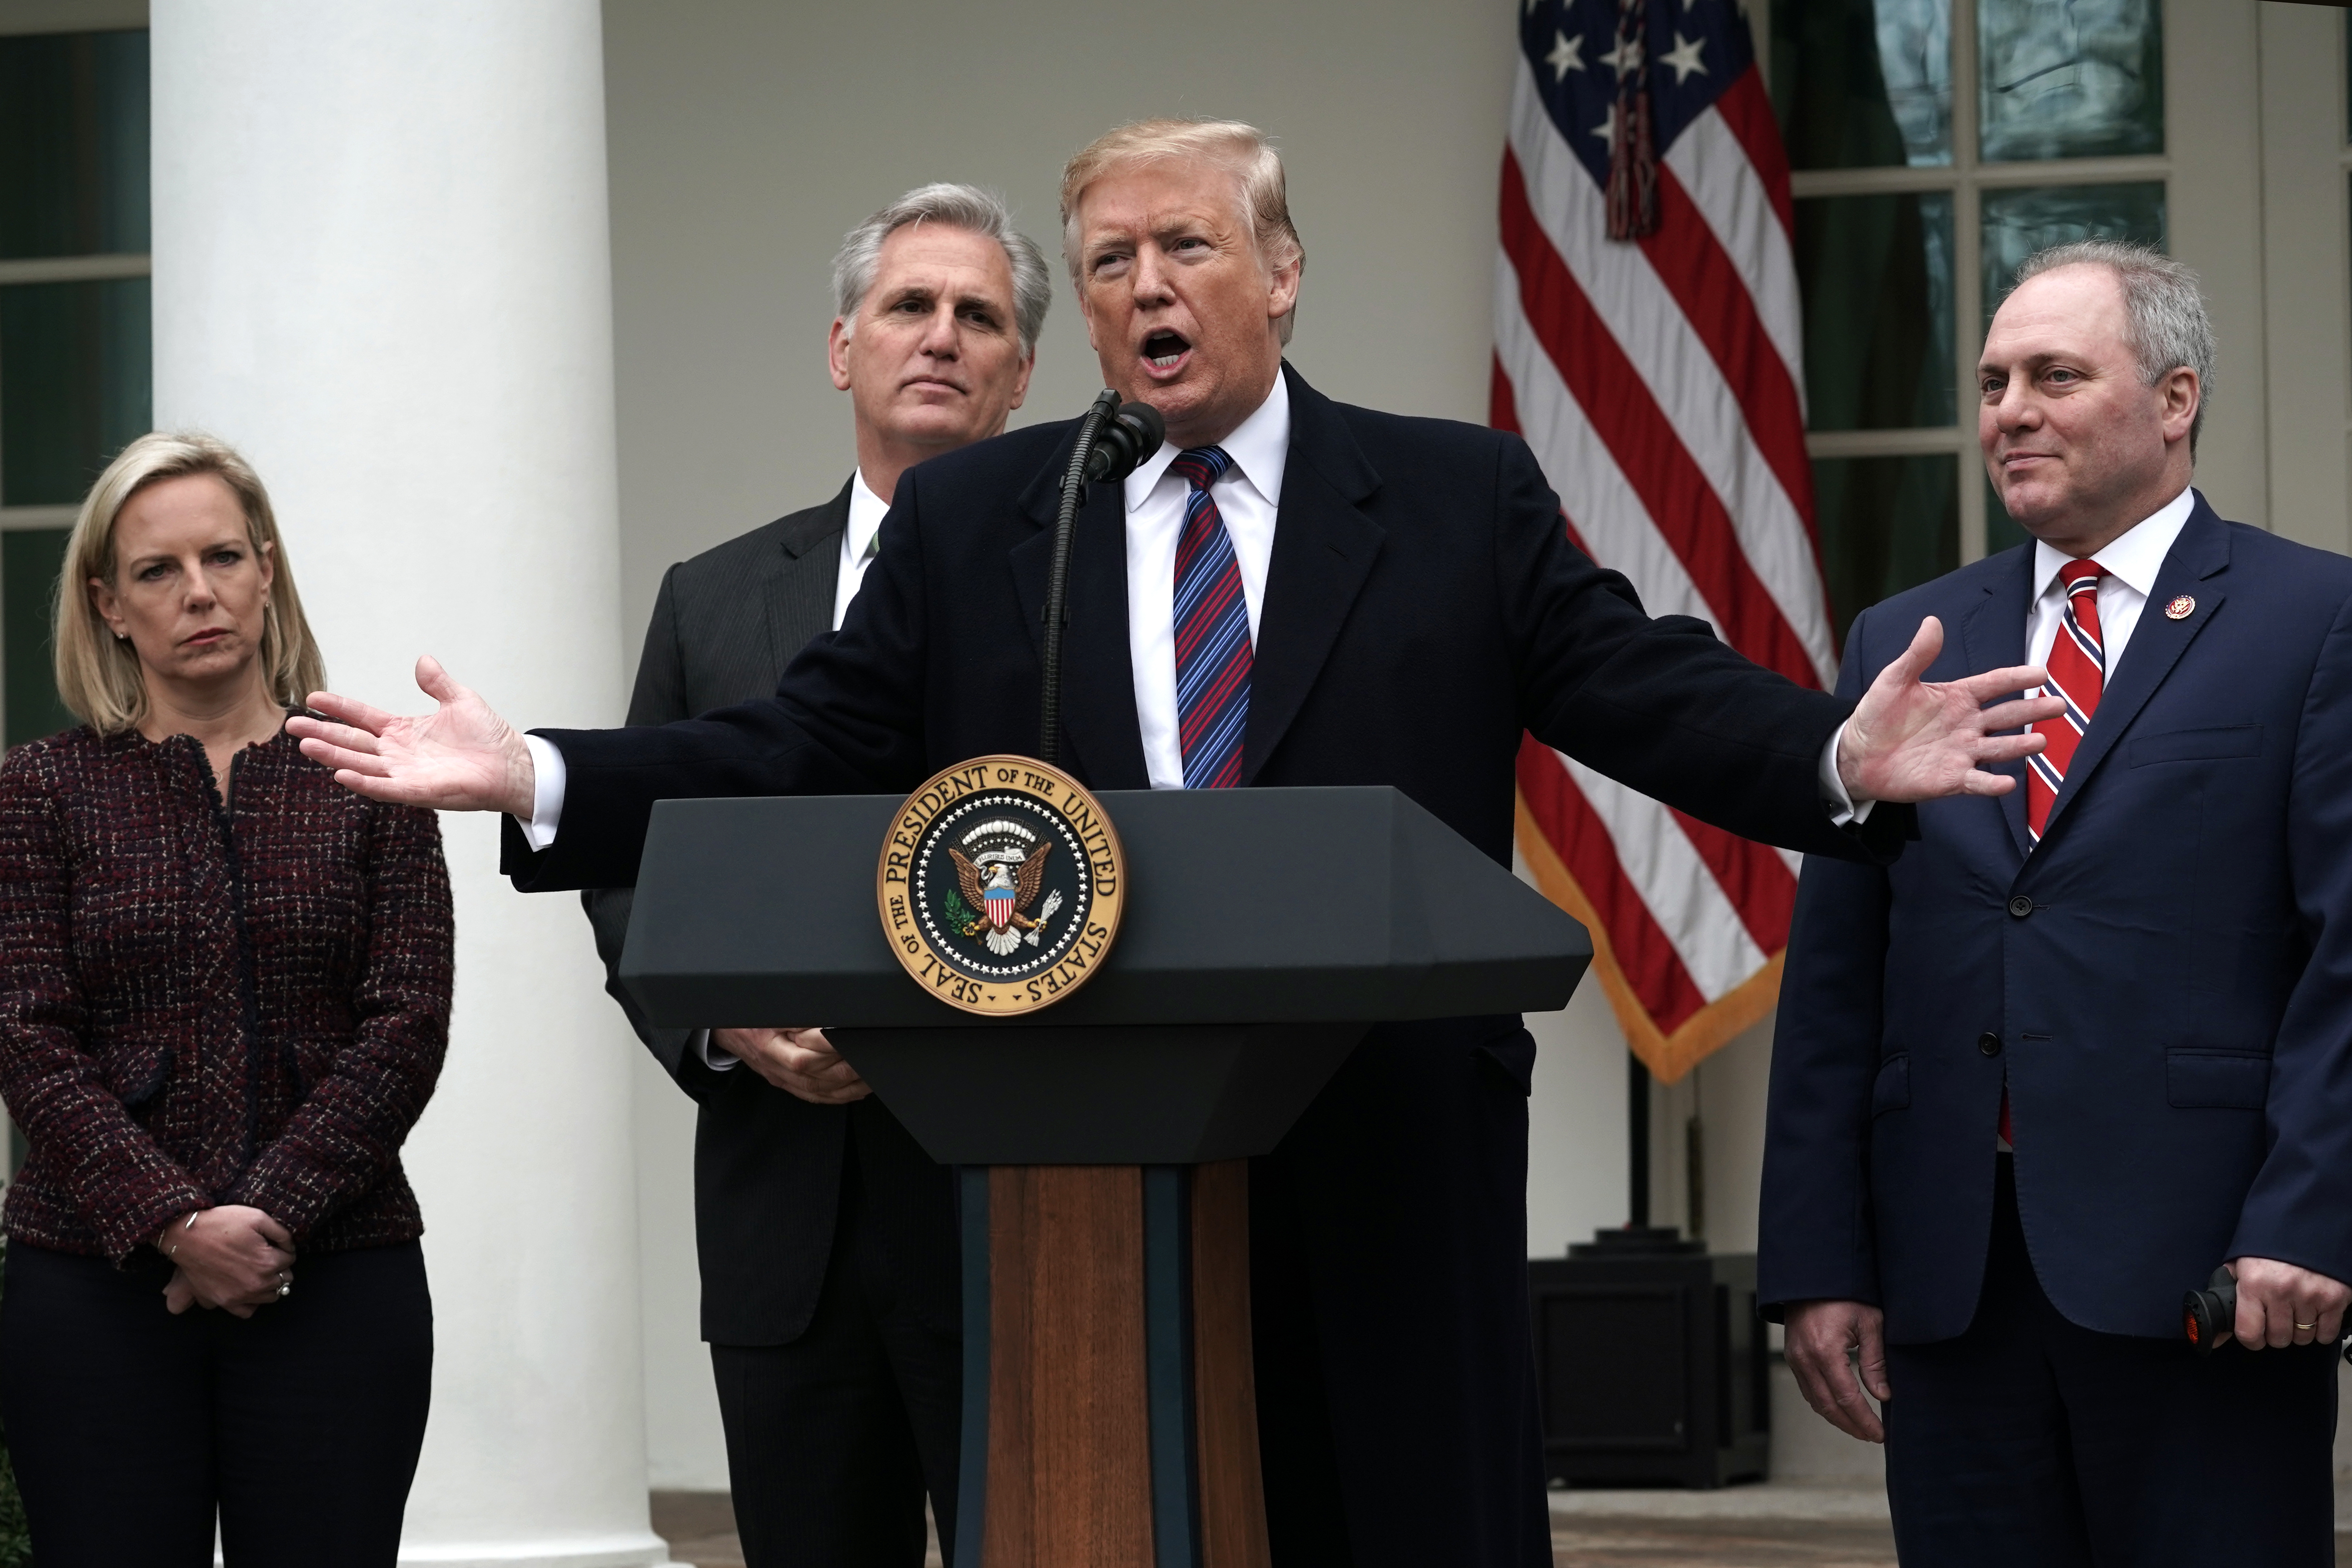 U.S. President Donald Trump speaks as he is joined by (L-R) Secretary of Homeland Security Kirstjen Nielsen, Rep. Kevin McCarthy, and Rep. Steve Scalise in the Rose Garden of the White House on January 4, 2019 in Washington, DC. (Photo by Alex Wong/Getty Images)